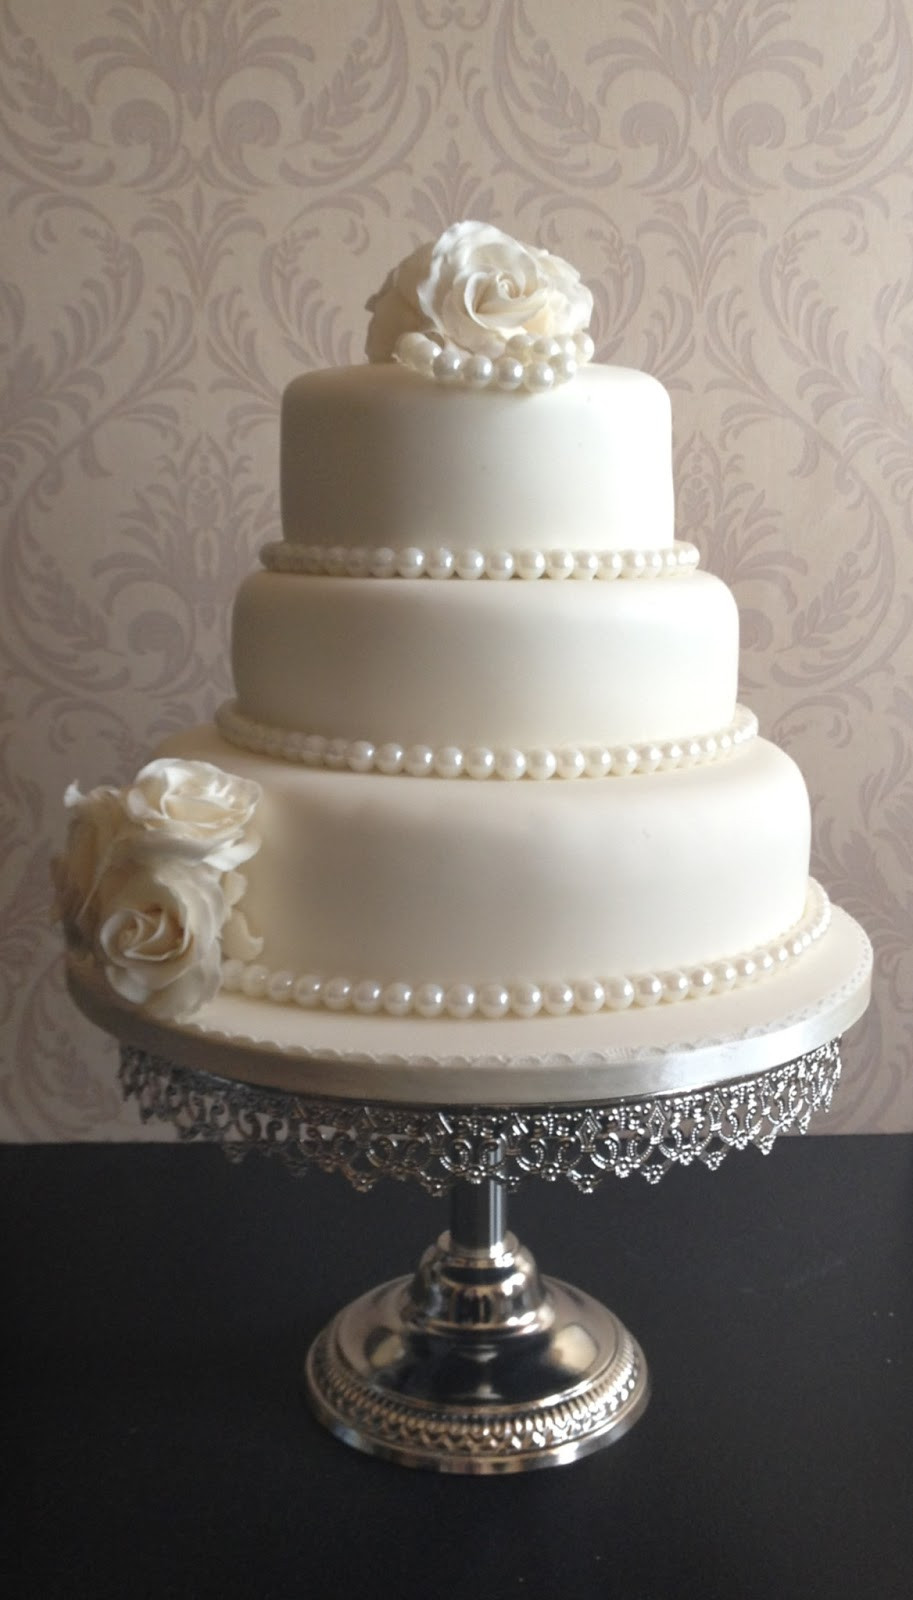 Wedding Cakes With Pearls  Carina s Cakes ROSES AND PEARLS WEDDING CAKE